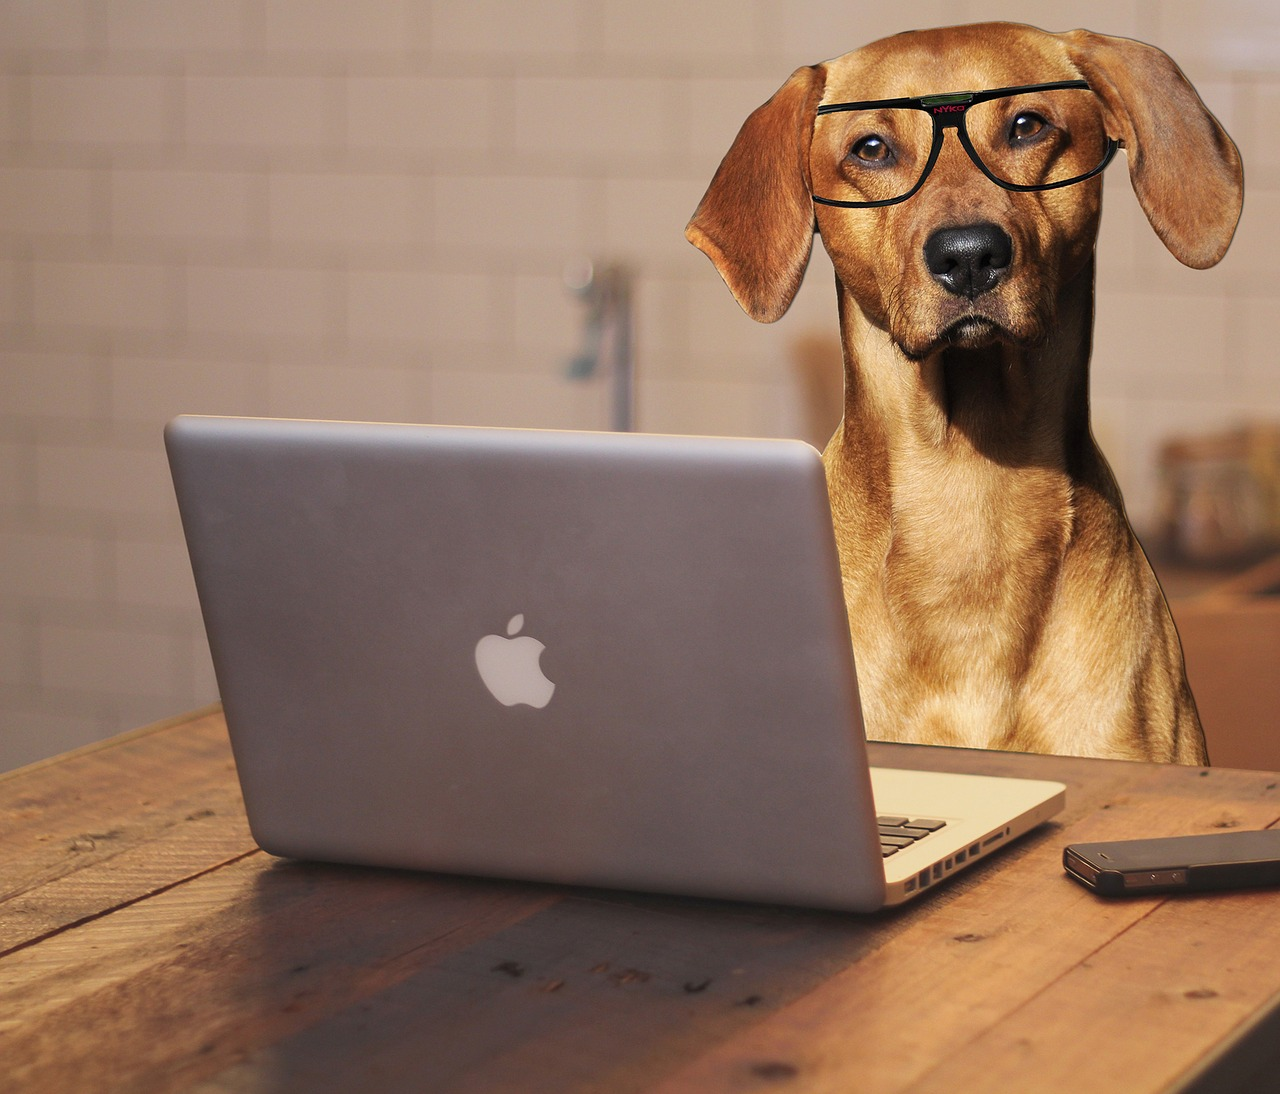 Picture of a dog in front of a computer.